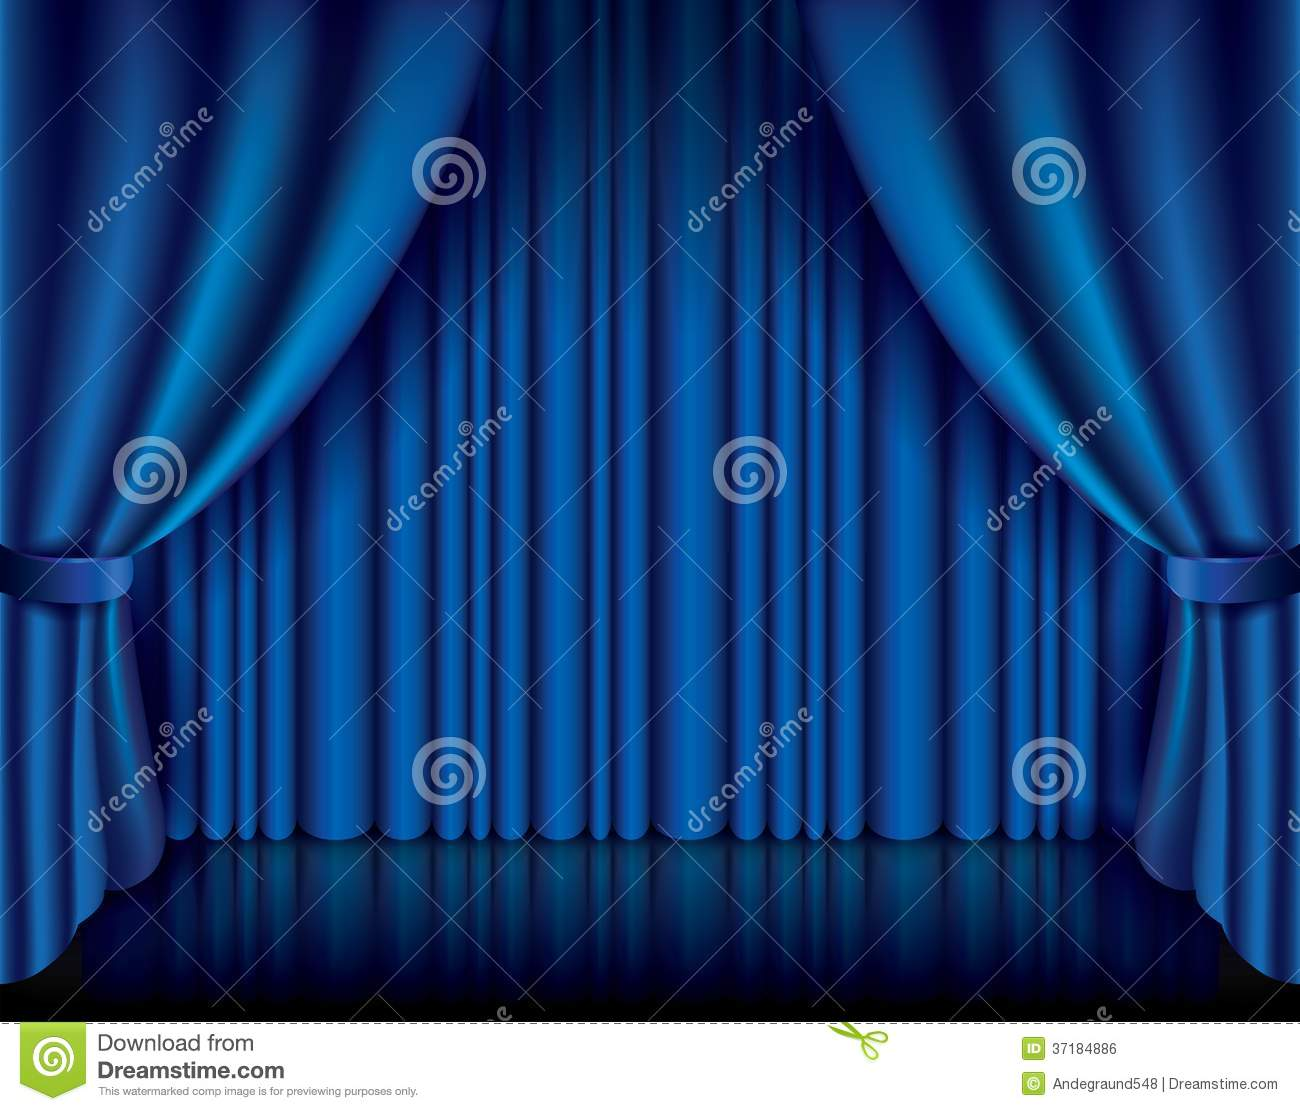 Blue stage curtains blue stage curtain vector free vector in - Background Blue Curtain Illustration Performance Photo Realistic Vector Theatre